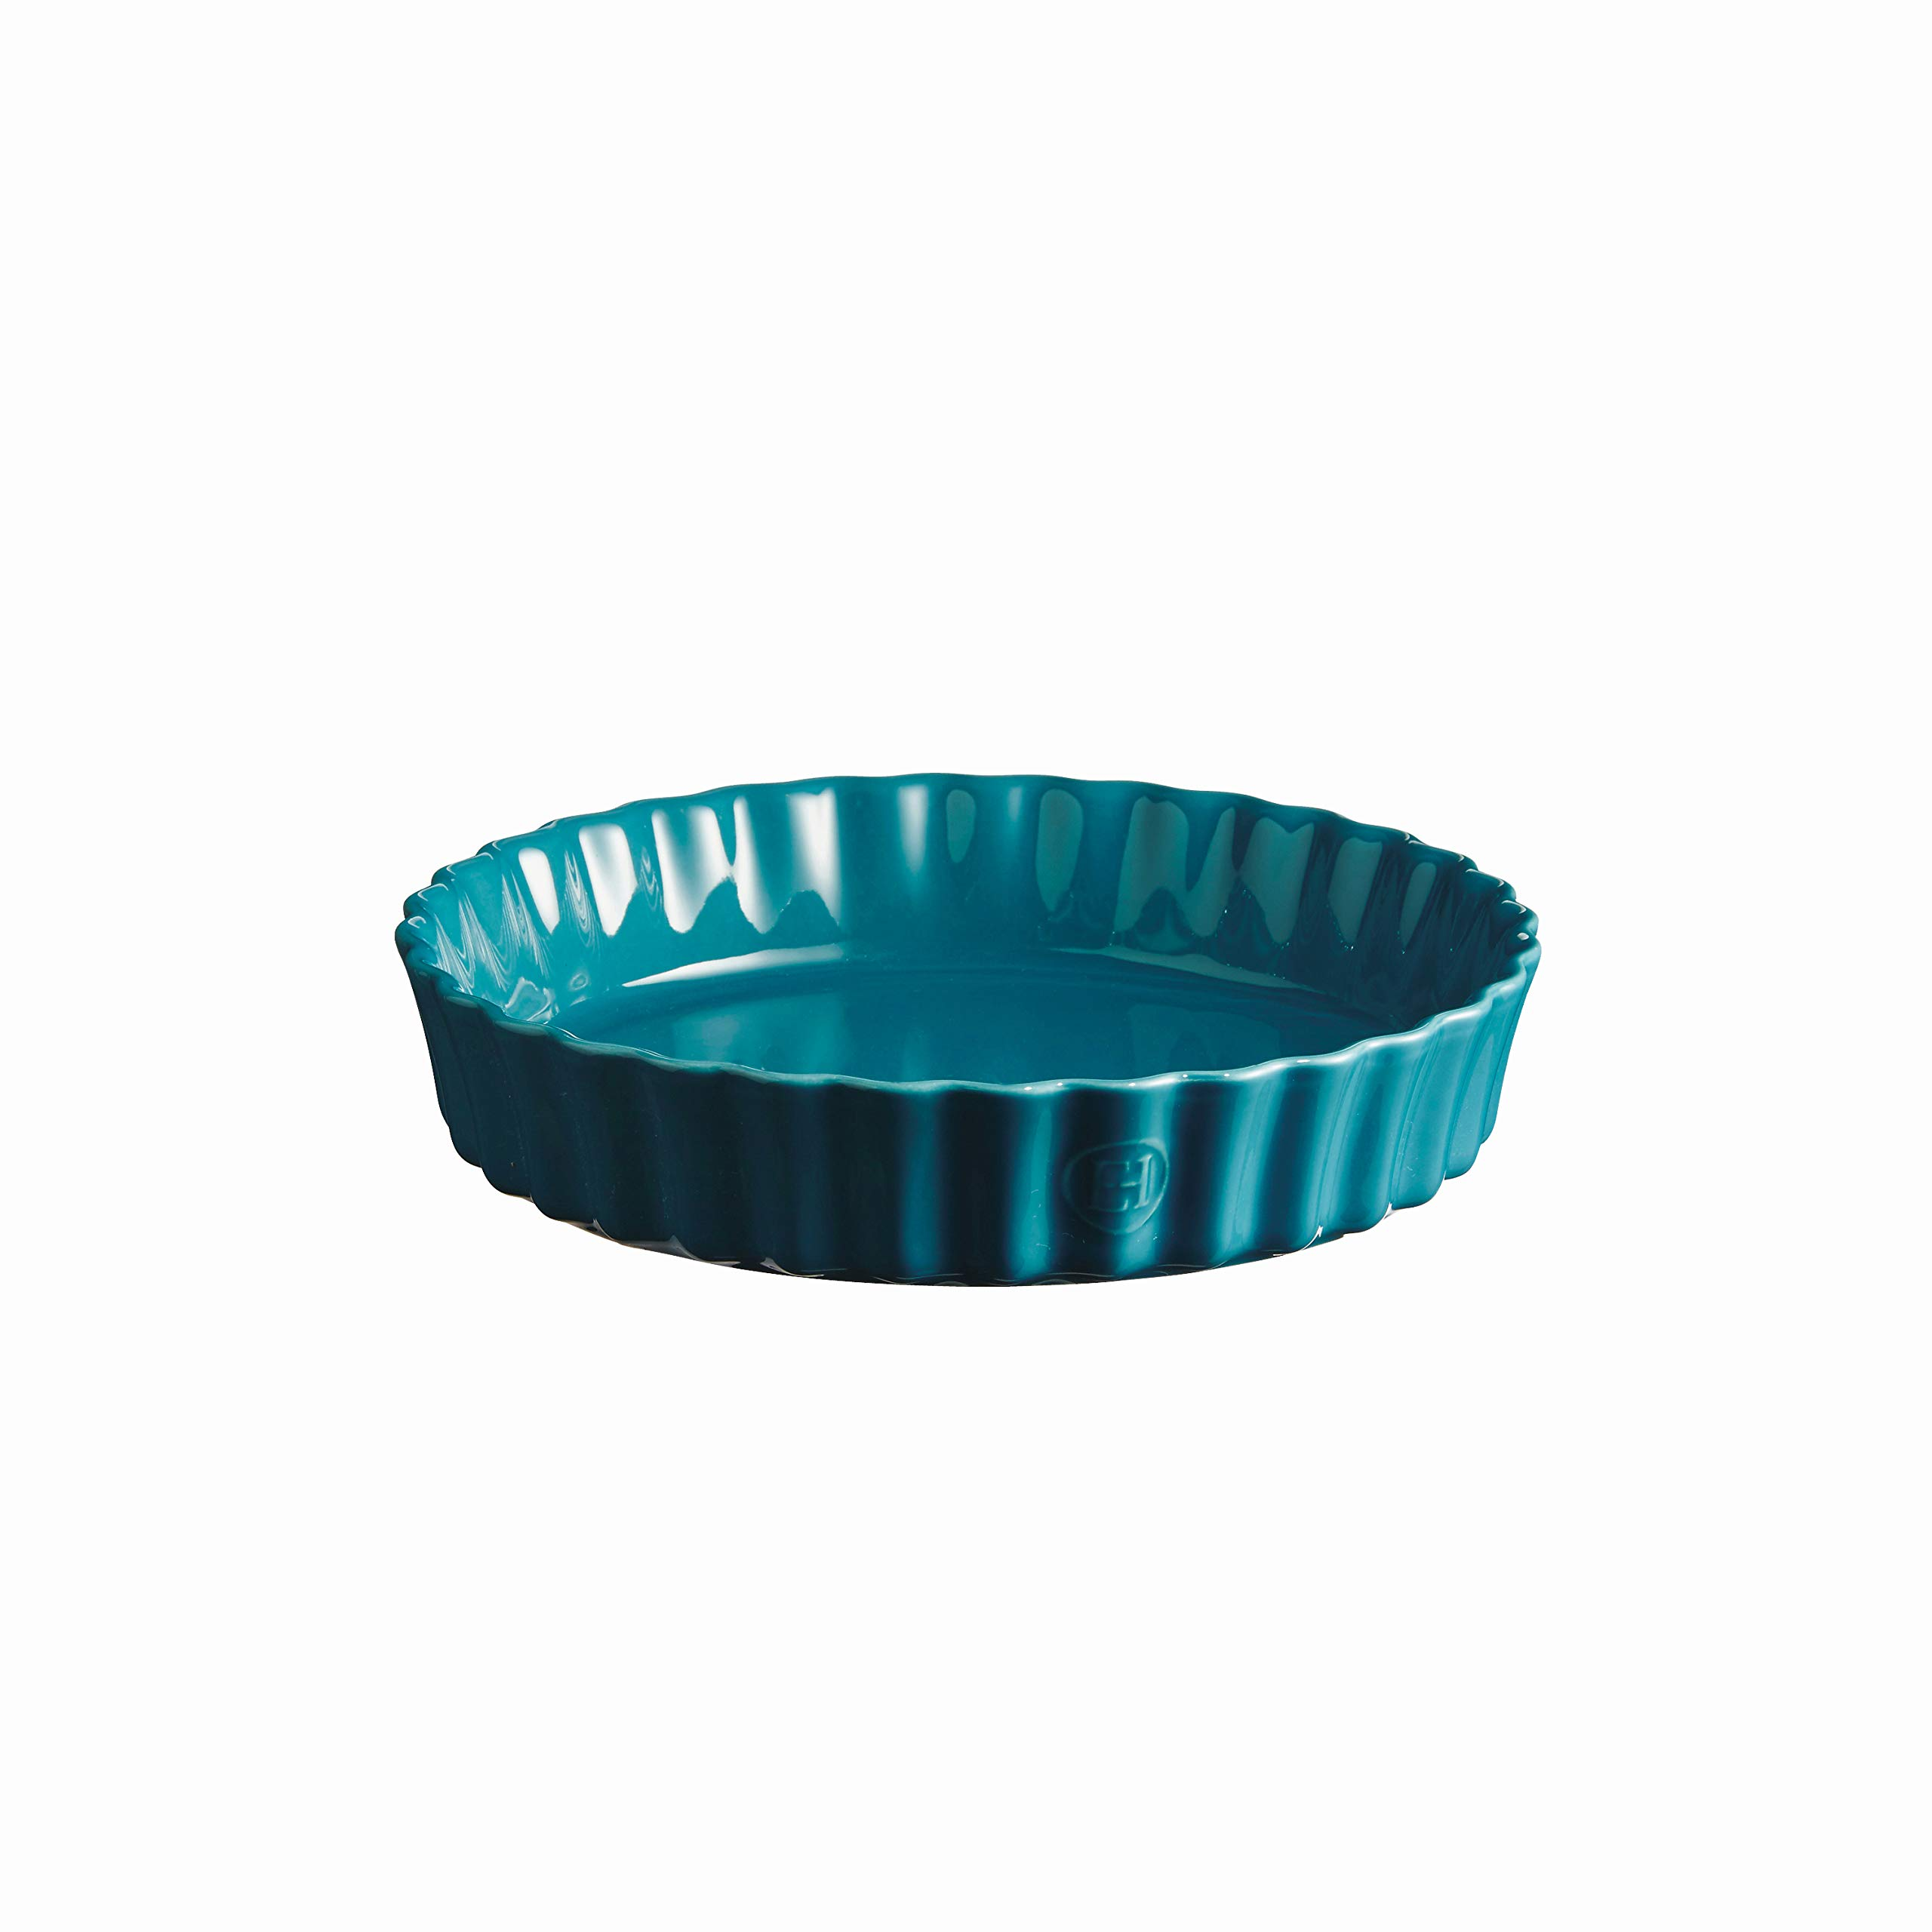 Emile Henry 606024 Deep Flan, Mediterranean Blue Quiche Dish, 1.2 qt by Emile Henry